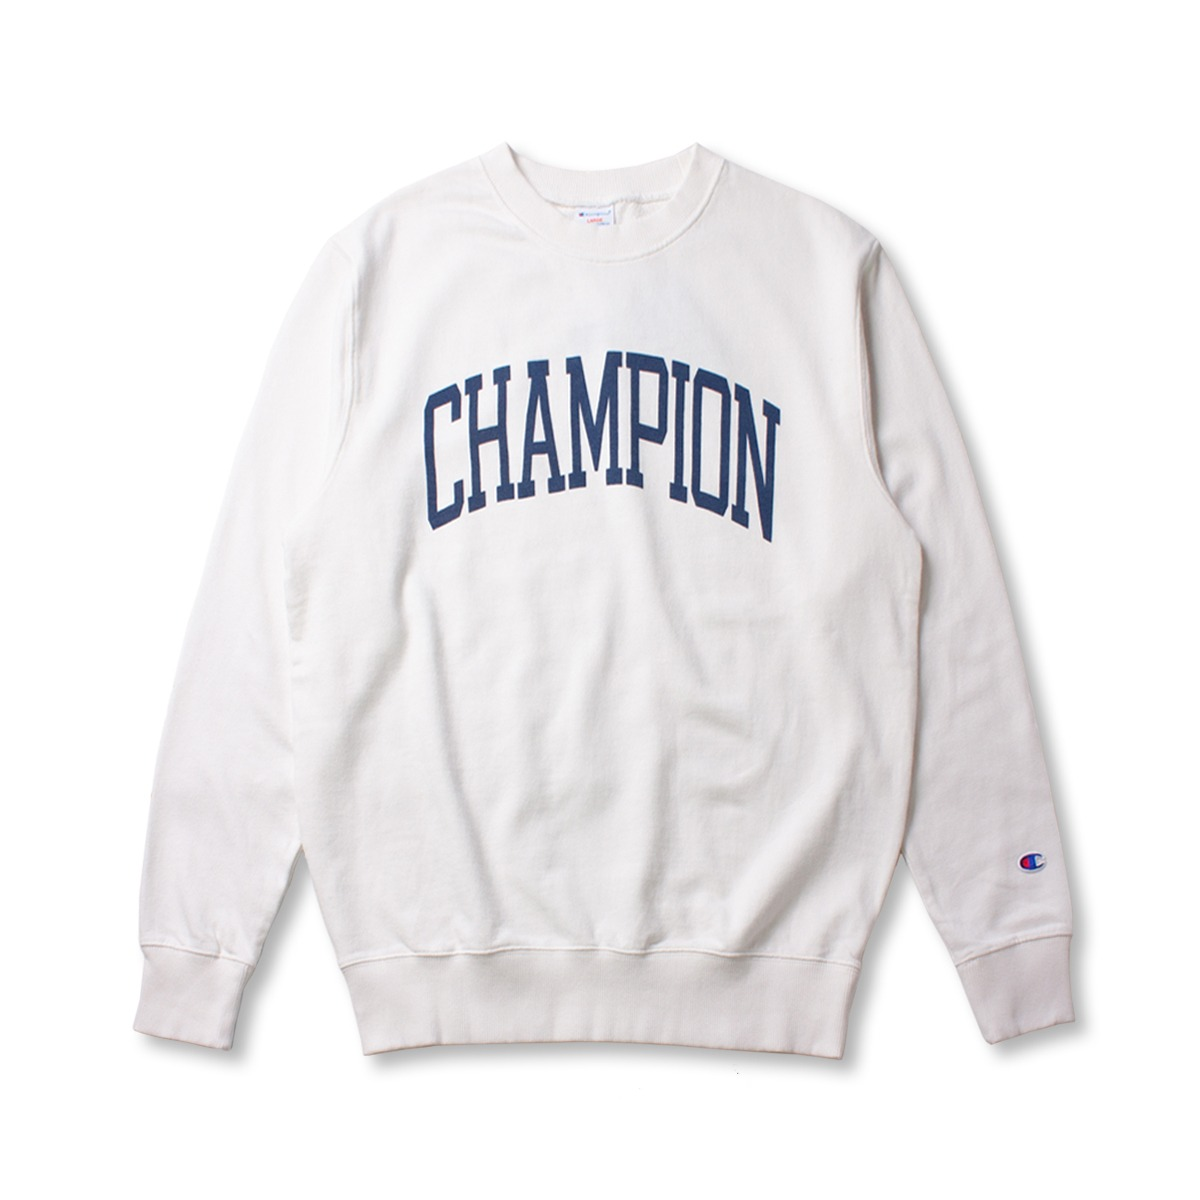 [CHAMPION] CREW NECK SWEAT SHIRT 'OFF WHITE'